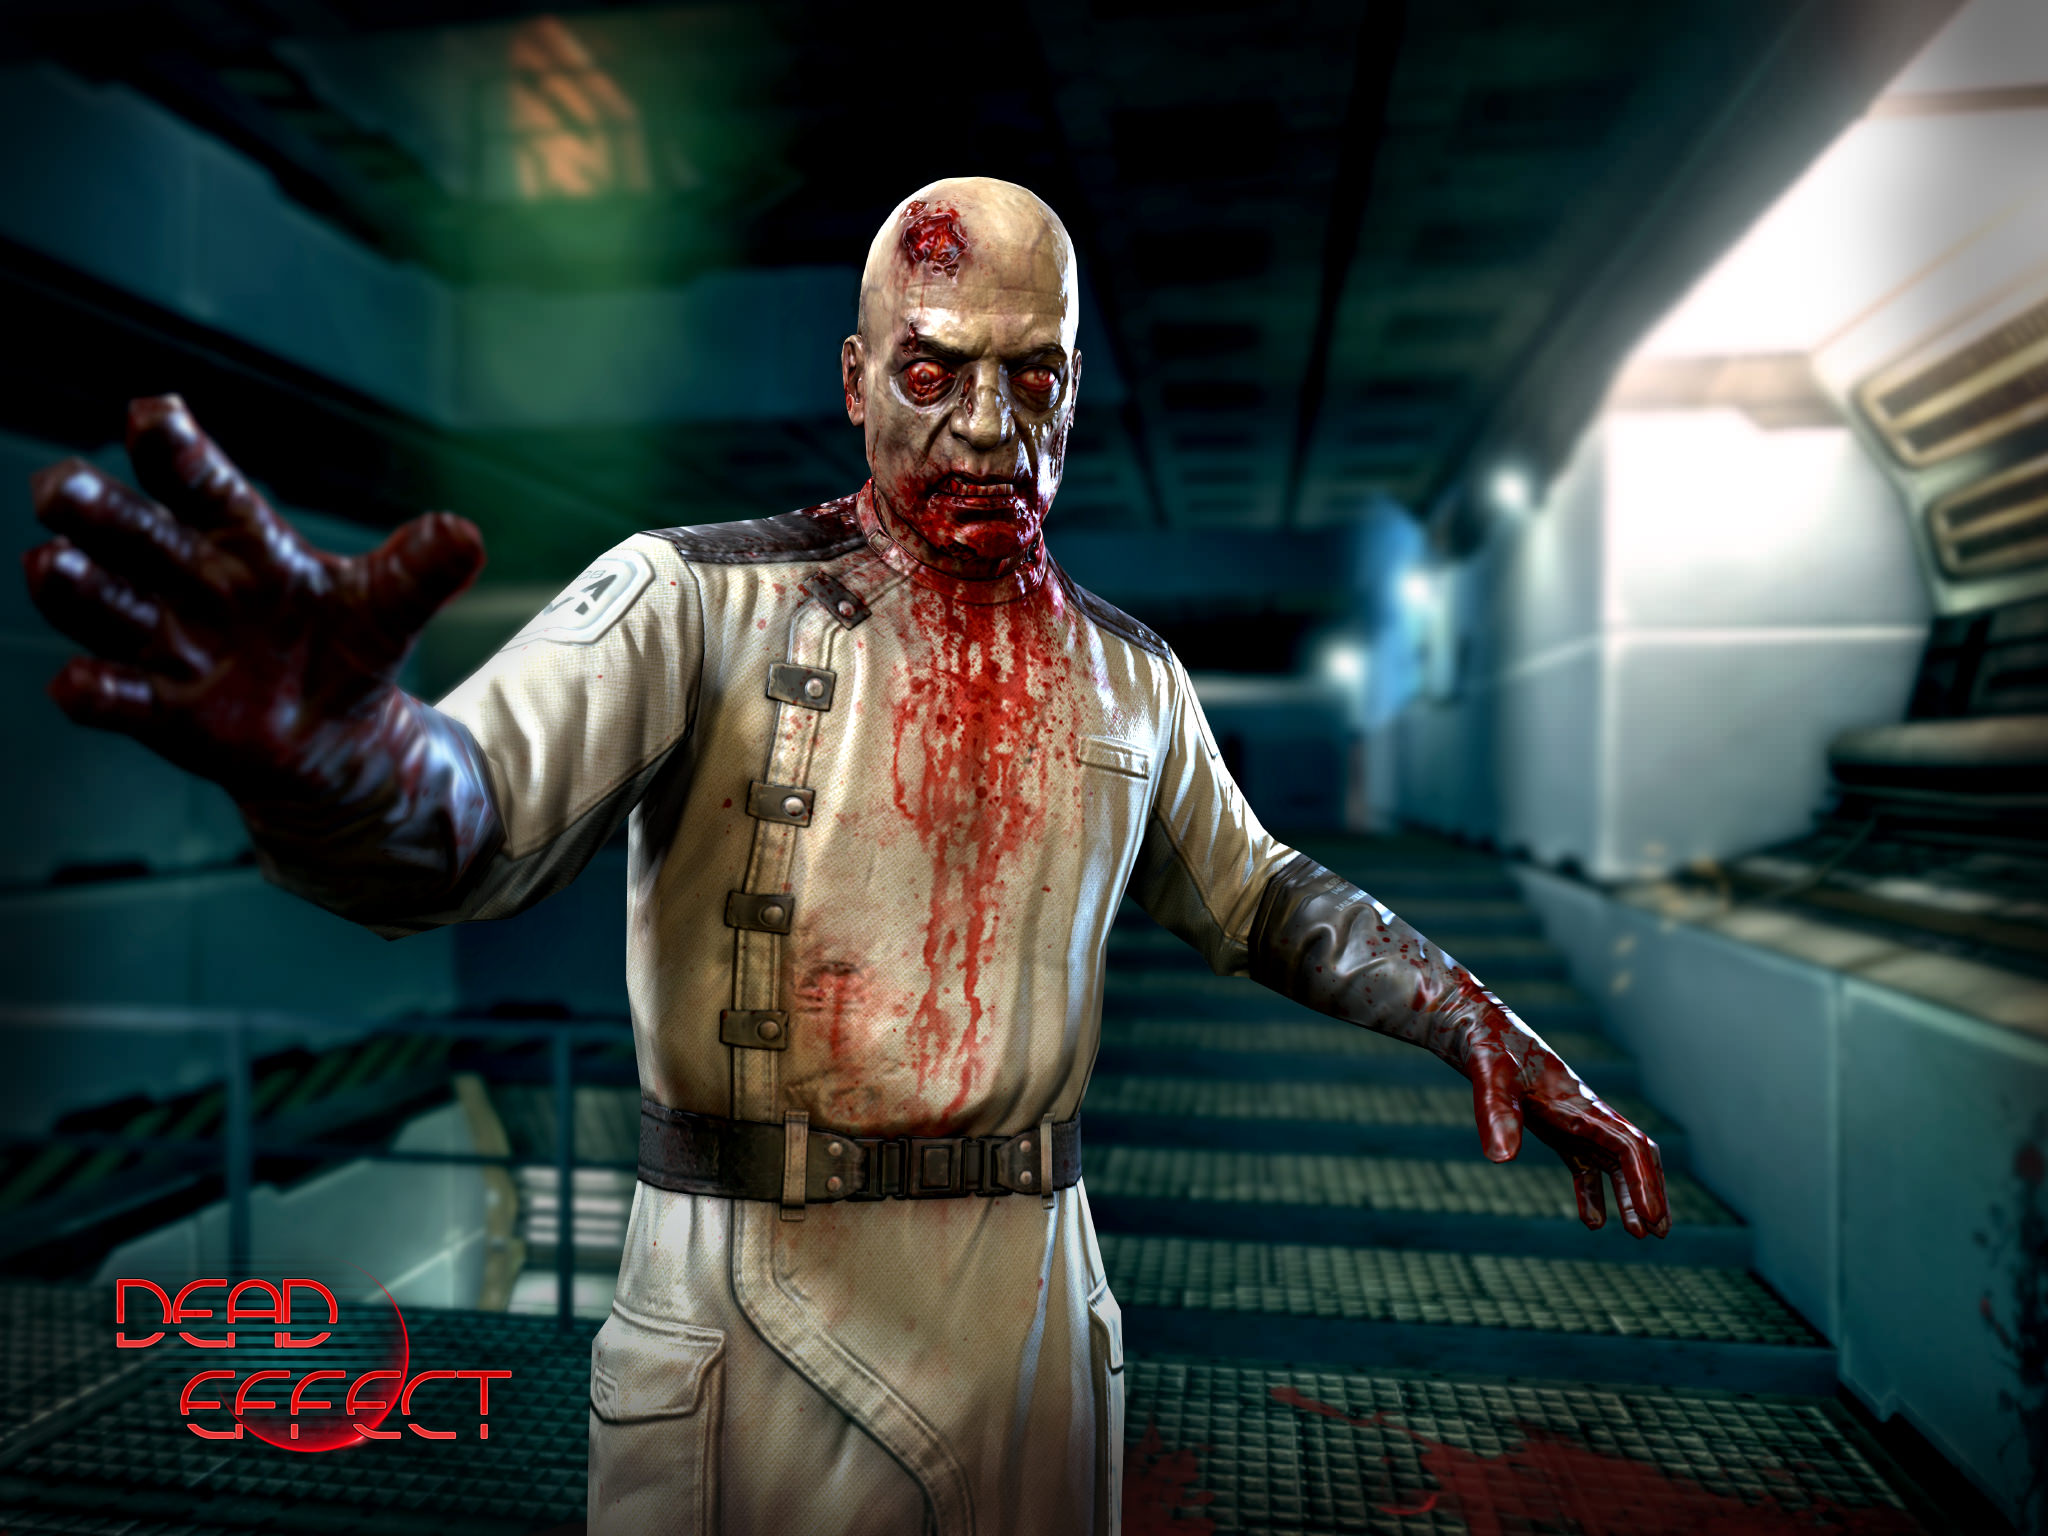 Dead Effect ( Steam Key / Region Free )